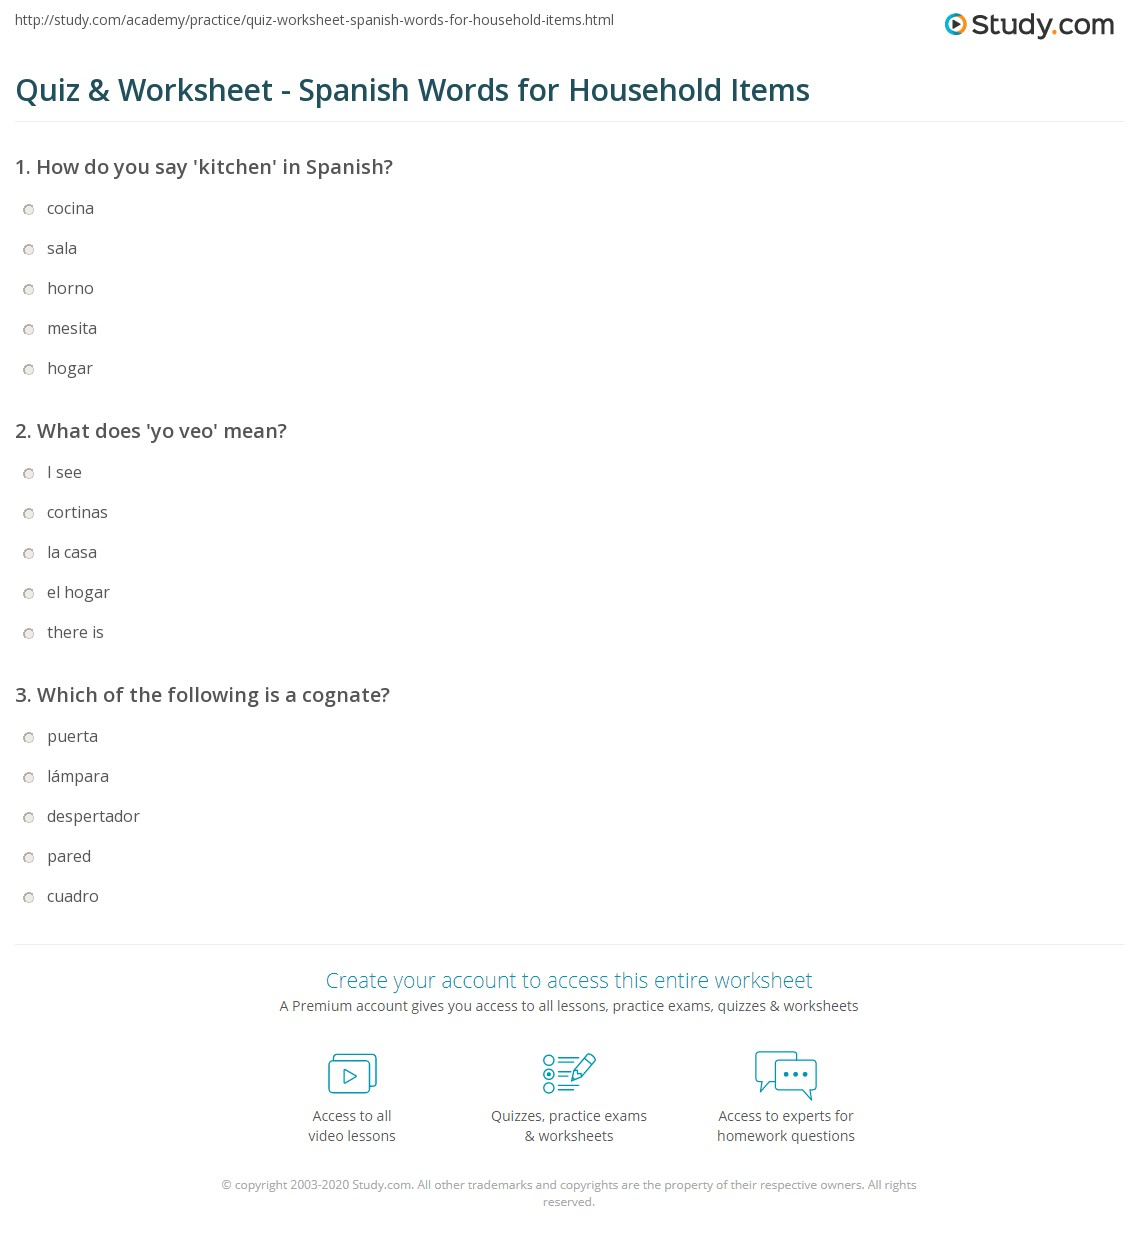 Quiz & Worksheet - Spanish Words for Household Items | Study.com